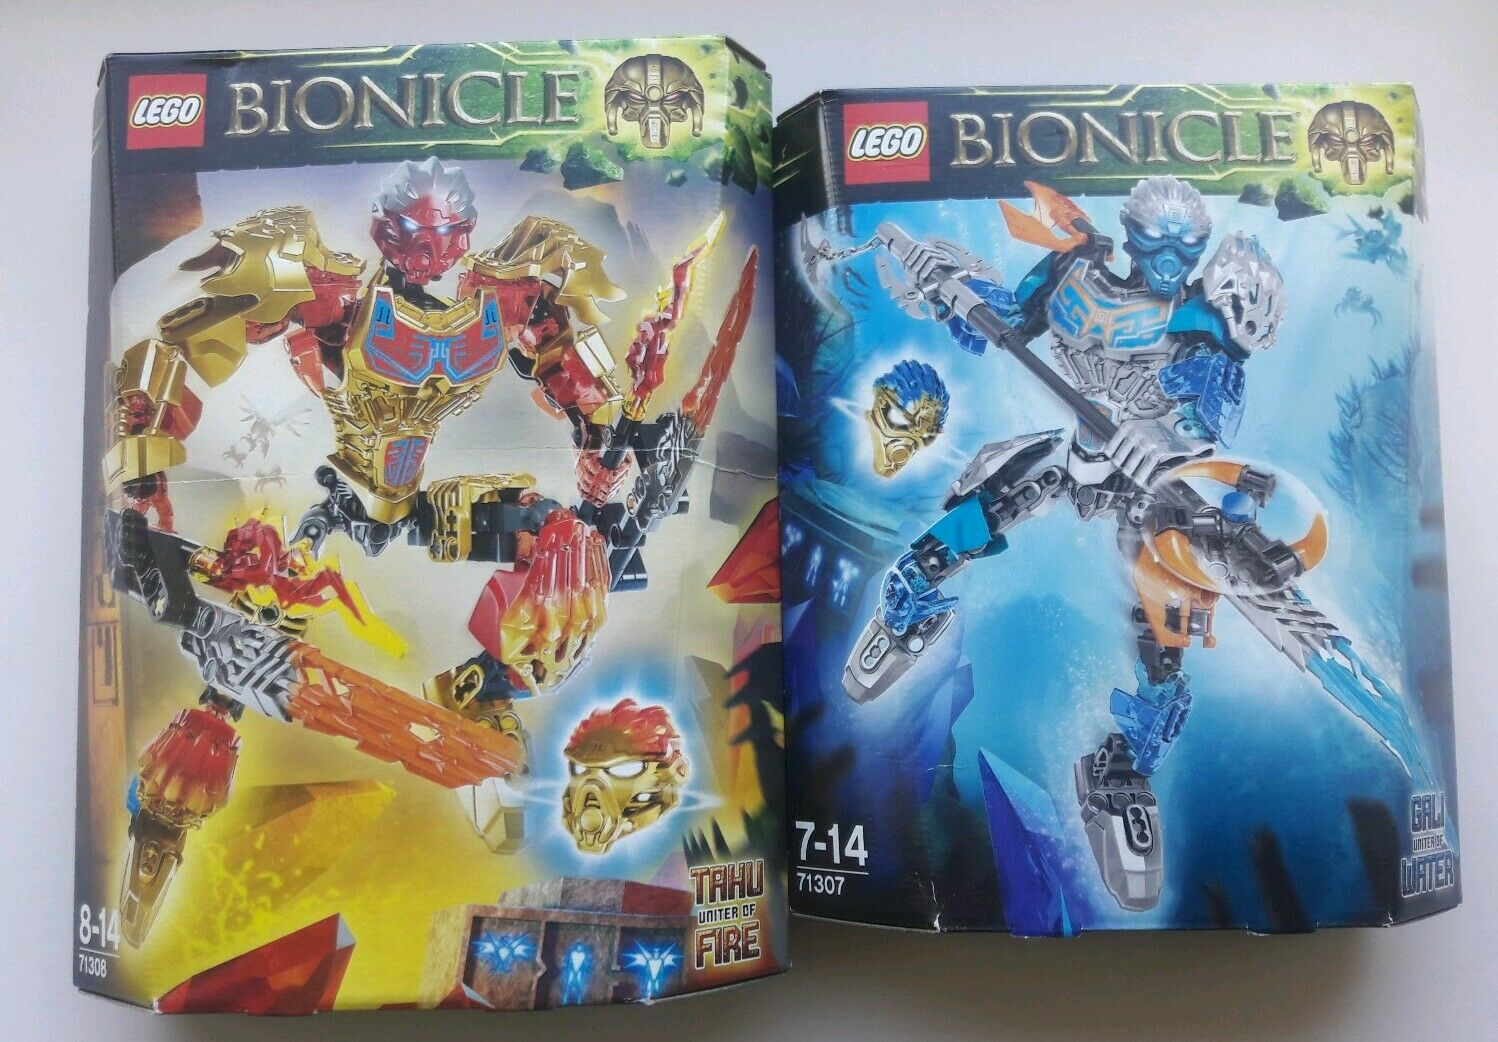 Lego Bionicle Tahu Uniter of Fire 71308 & Gali Uniter of Water 71307 All New